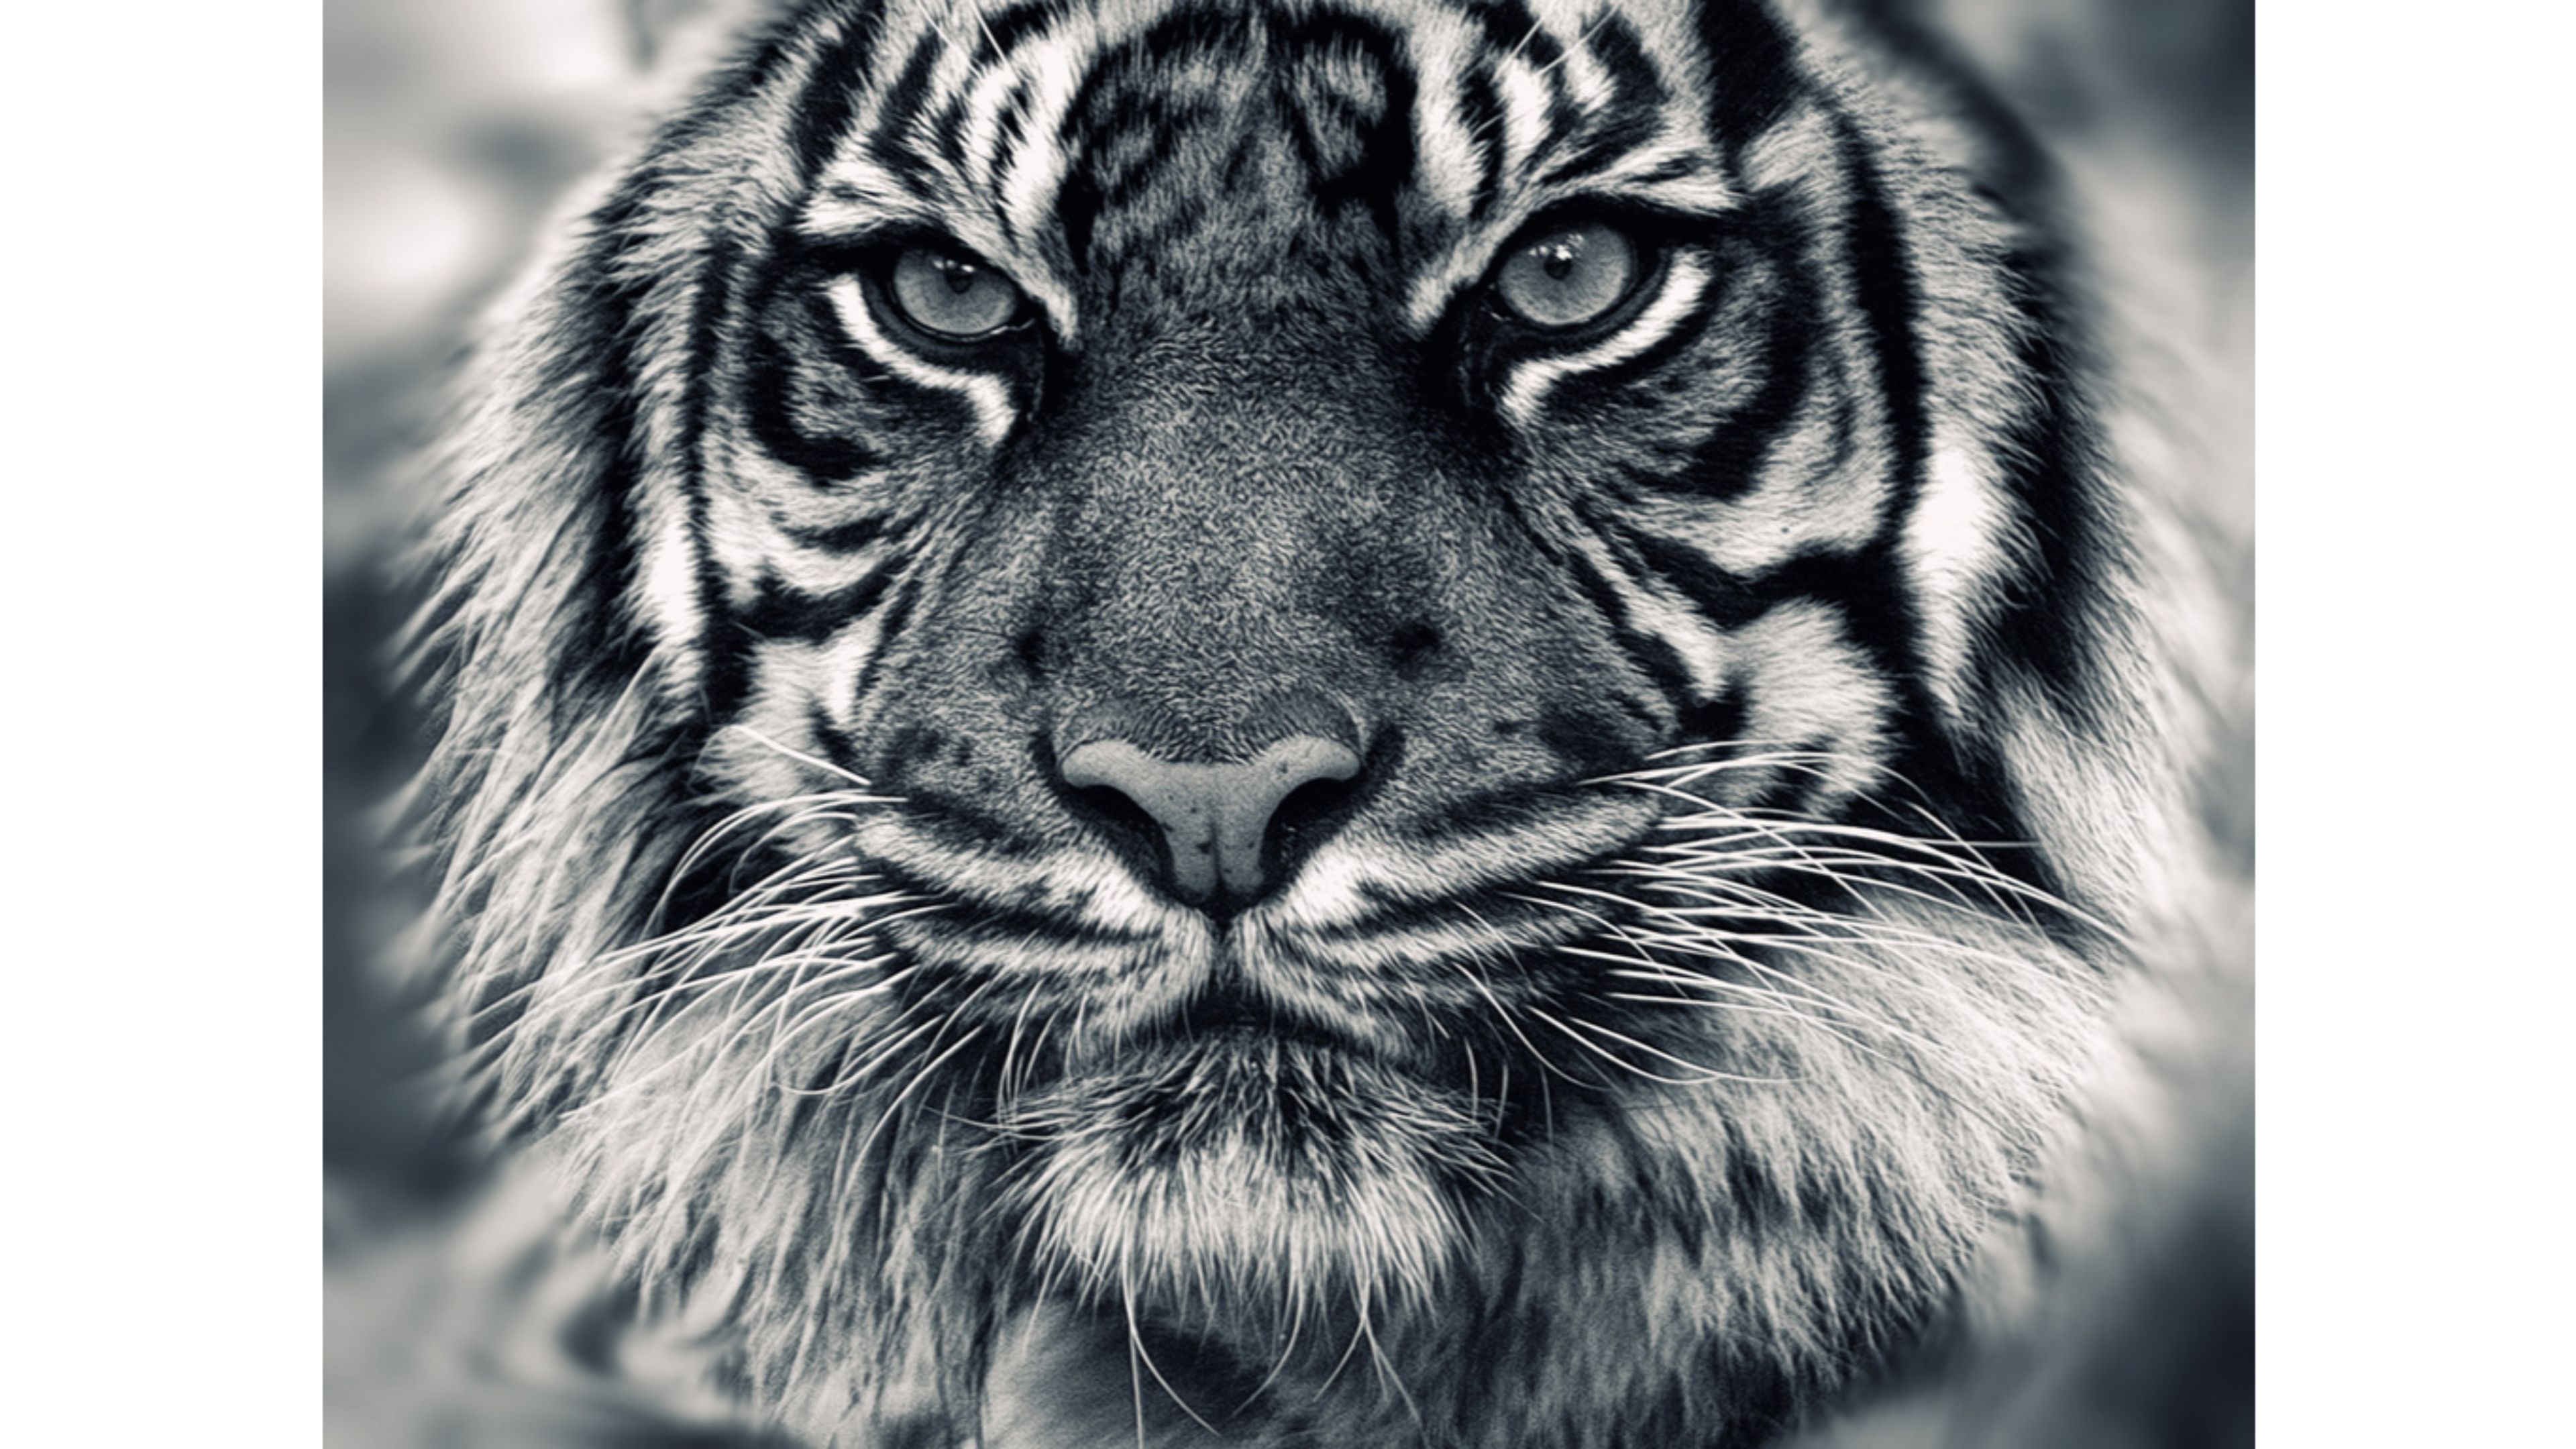 3840x2160px White Siberian Tiger Wallpaper - WallpaperSafari